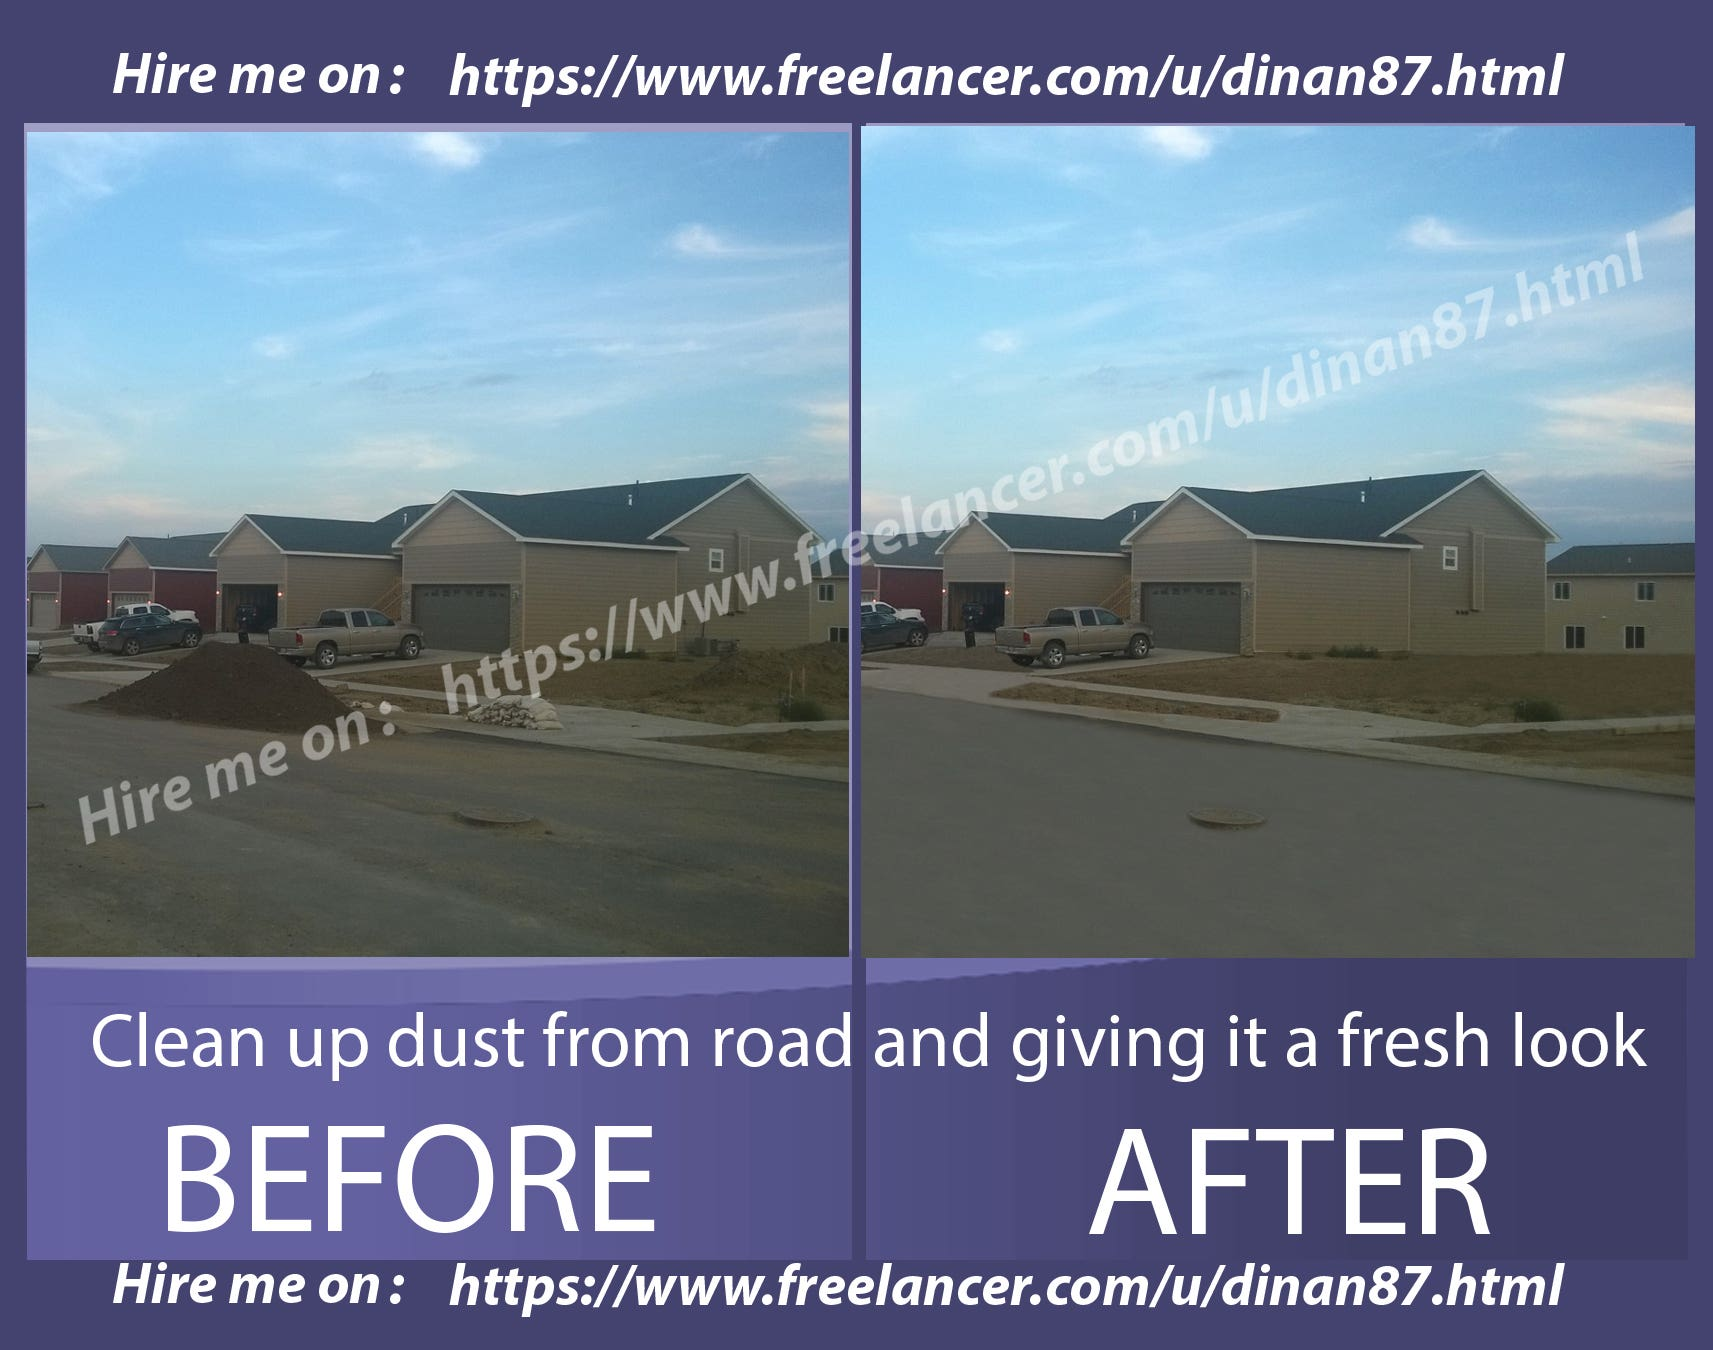 Clean up dust from road and gave it a fresh look(cloning)